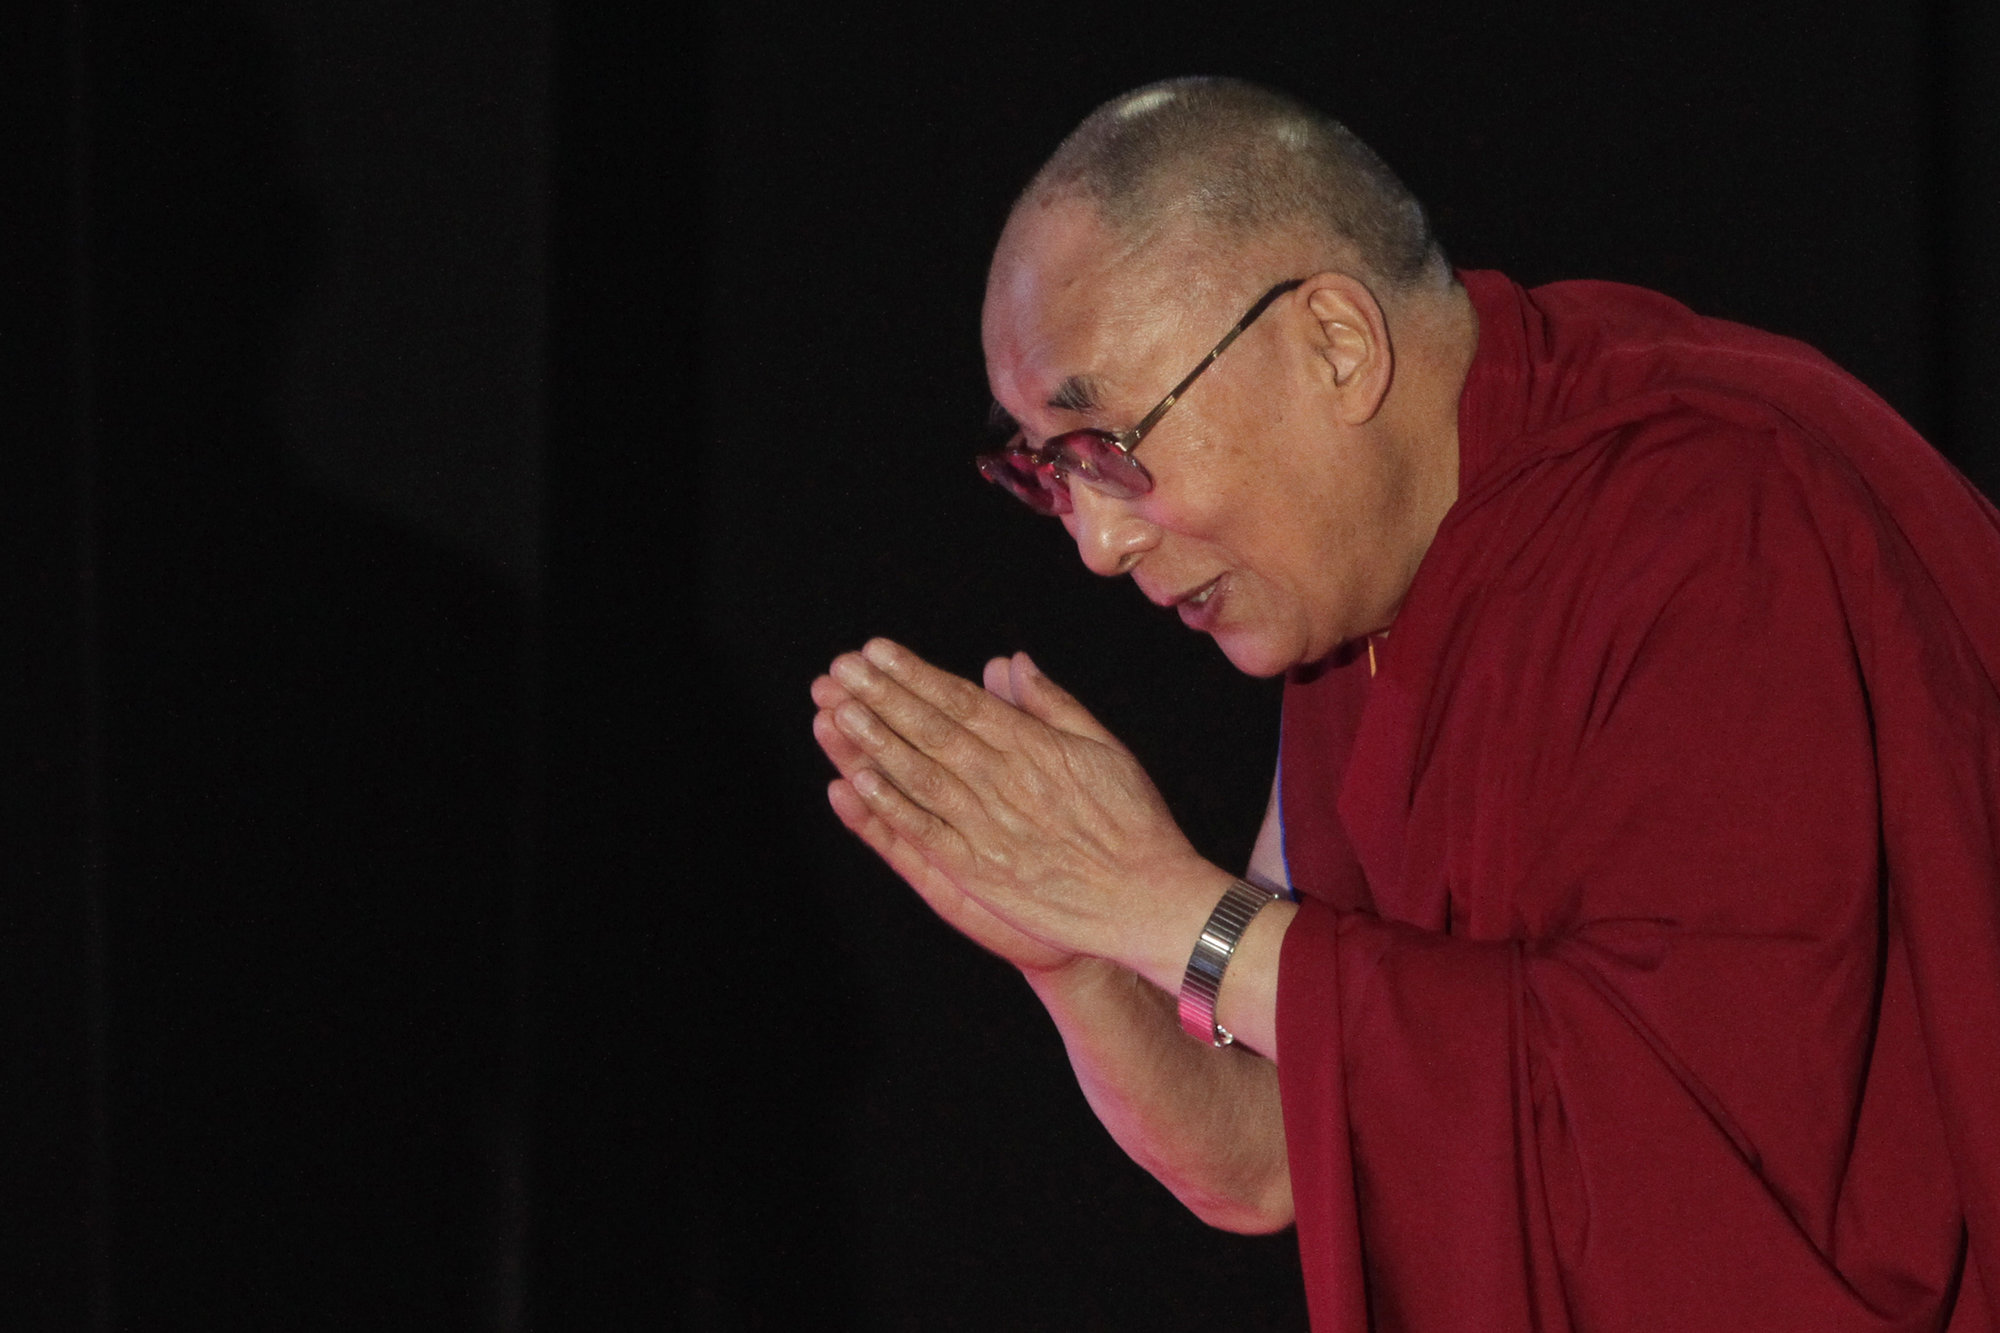 "<p>Tibetan spiritual leader the Dalai Lama greets the audience as he arrives to speak on ""A Human Approach to World Peace"" at Presidency College in Kolkata, India, on Jan. 13, 2015. </p>"